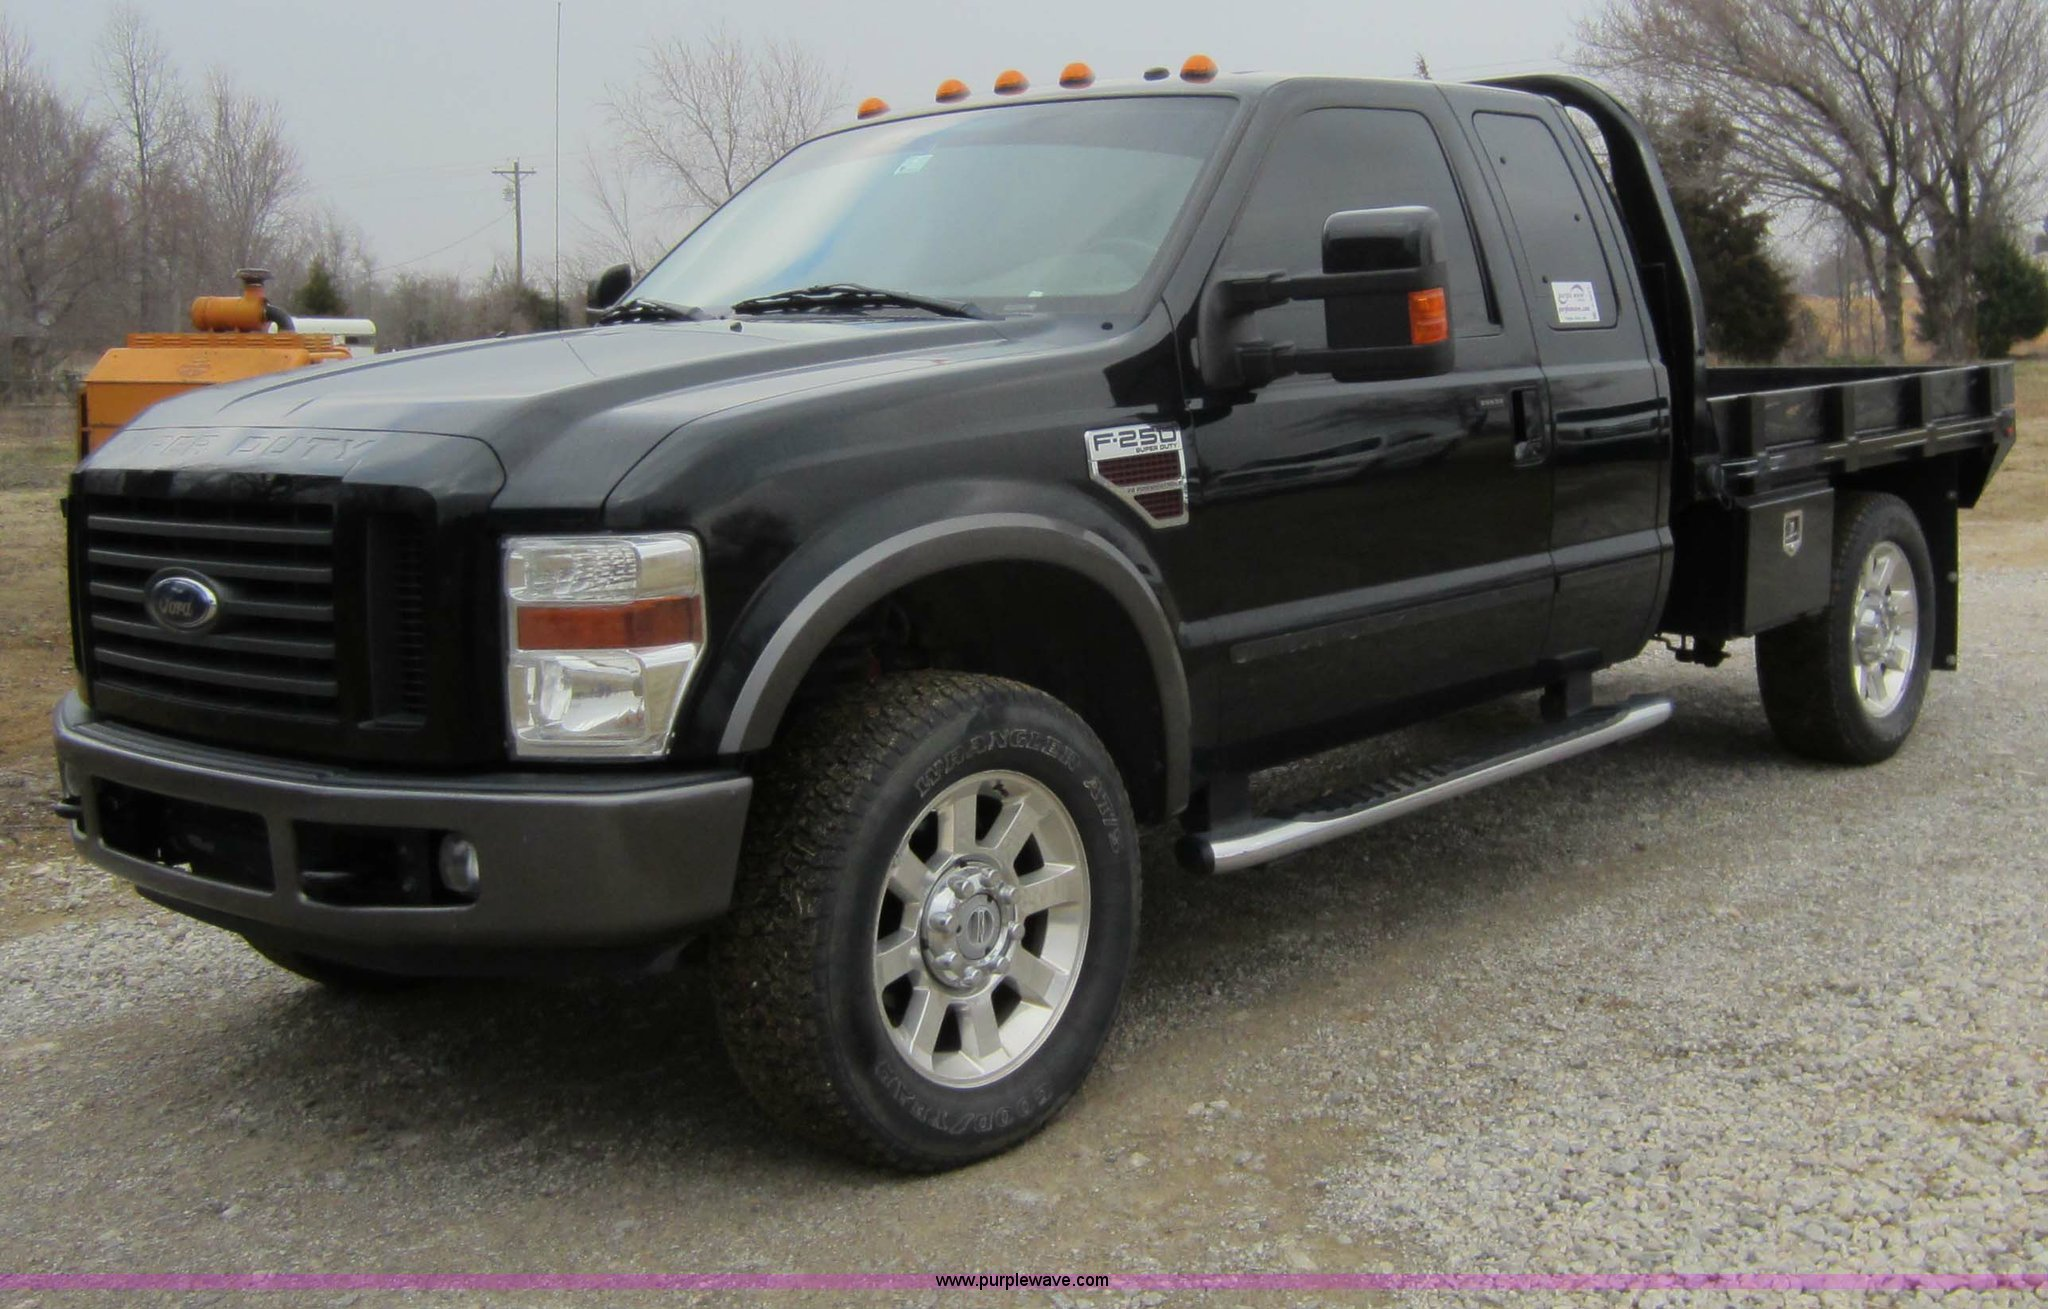 C5277 image for item c5277 2008 ford f250 super duty